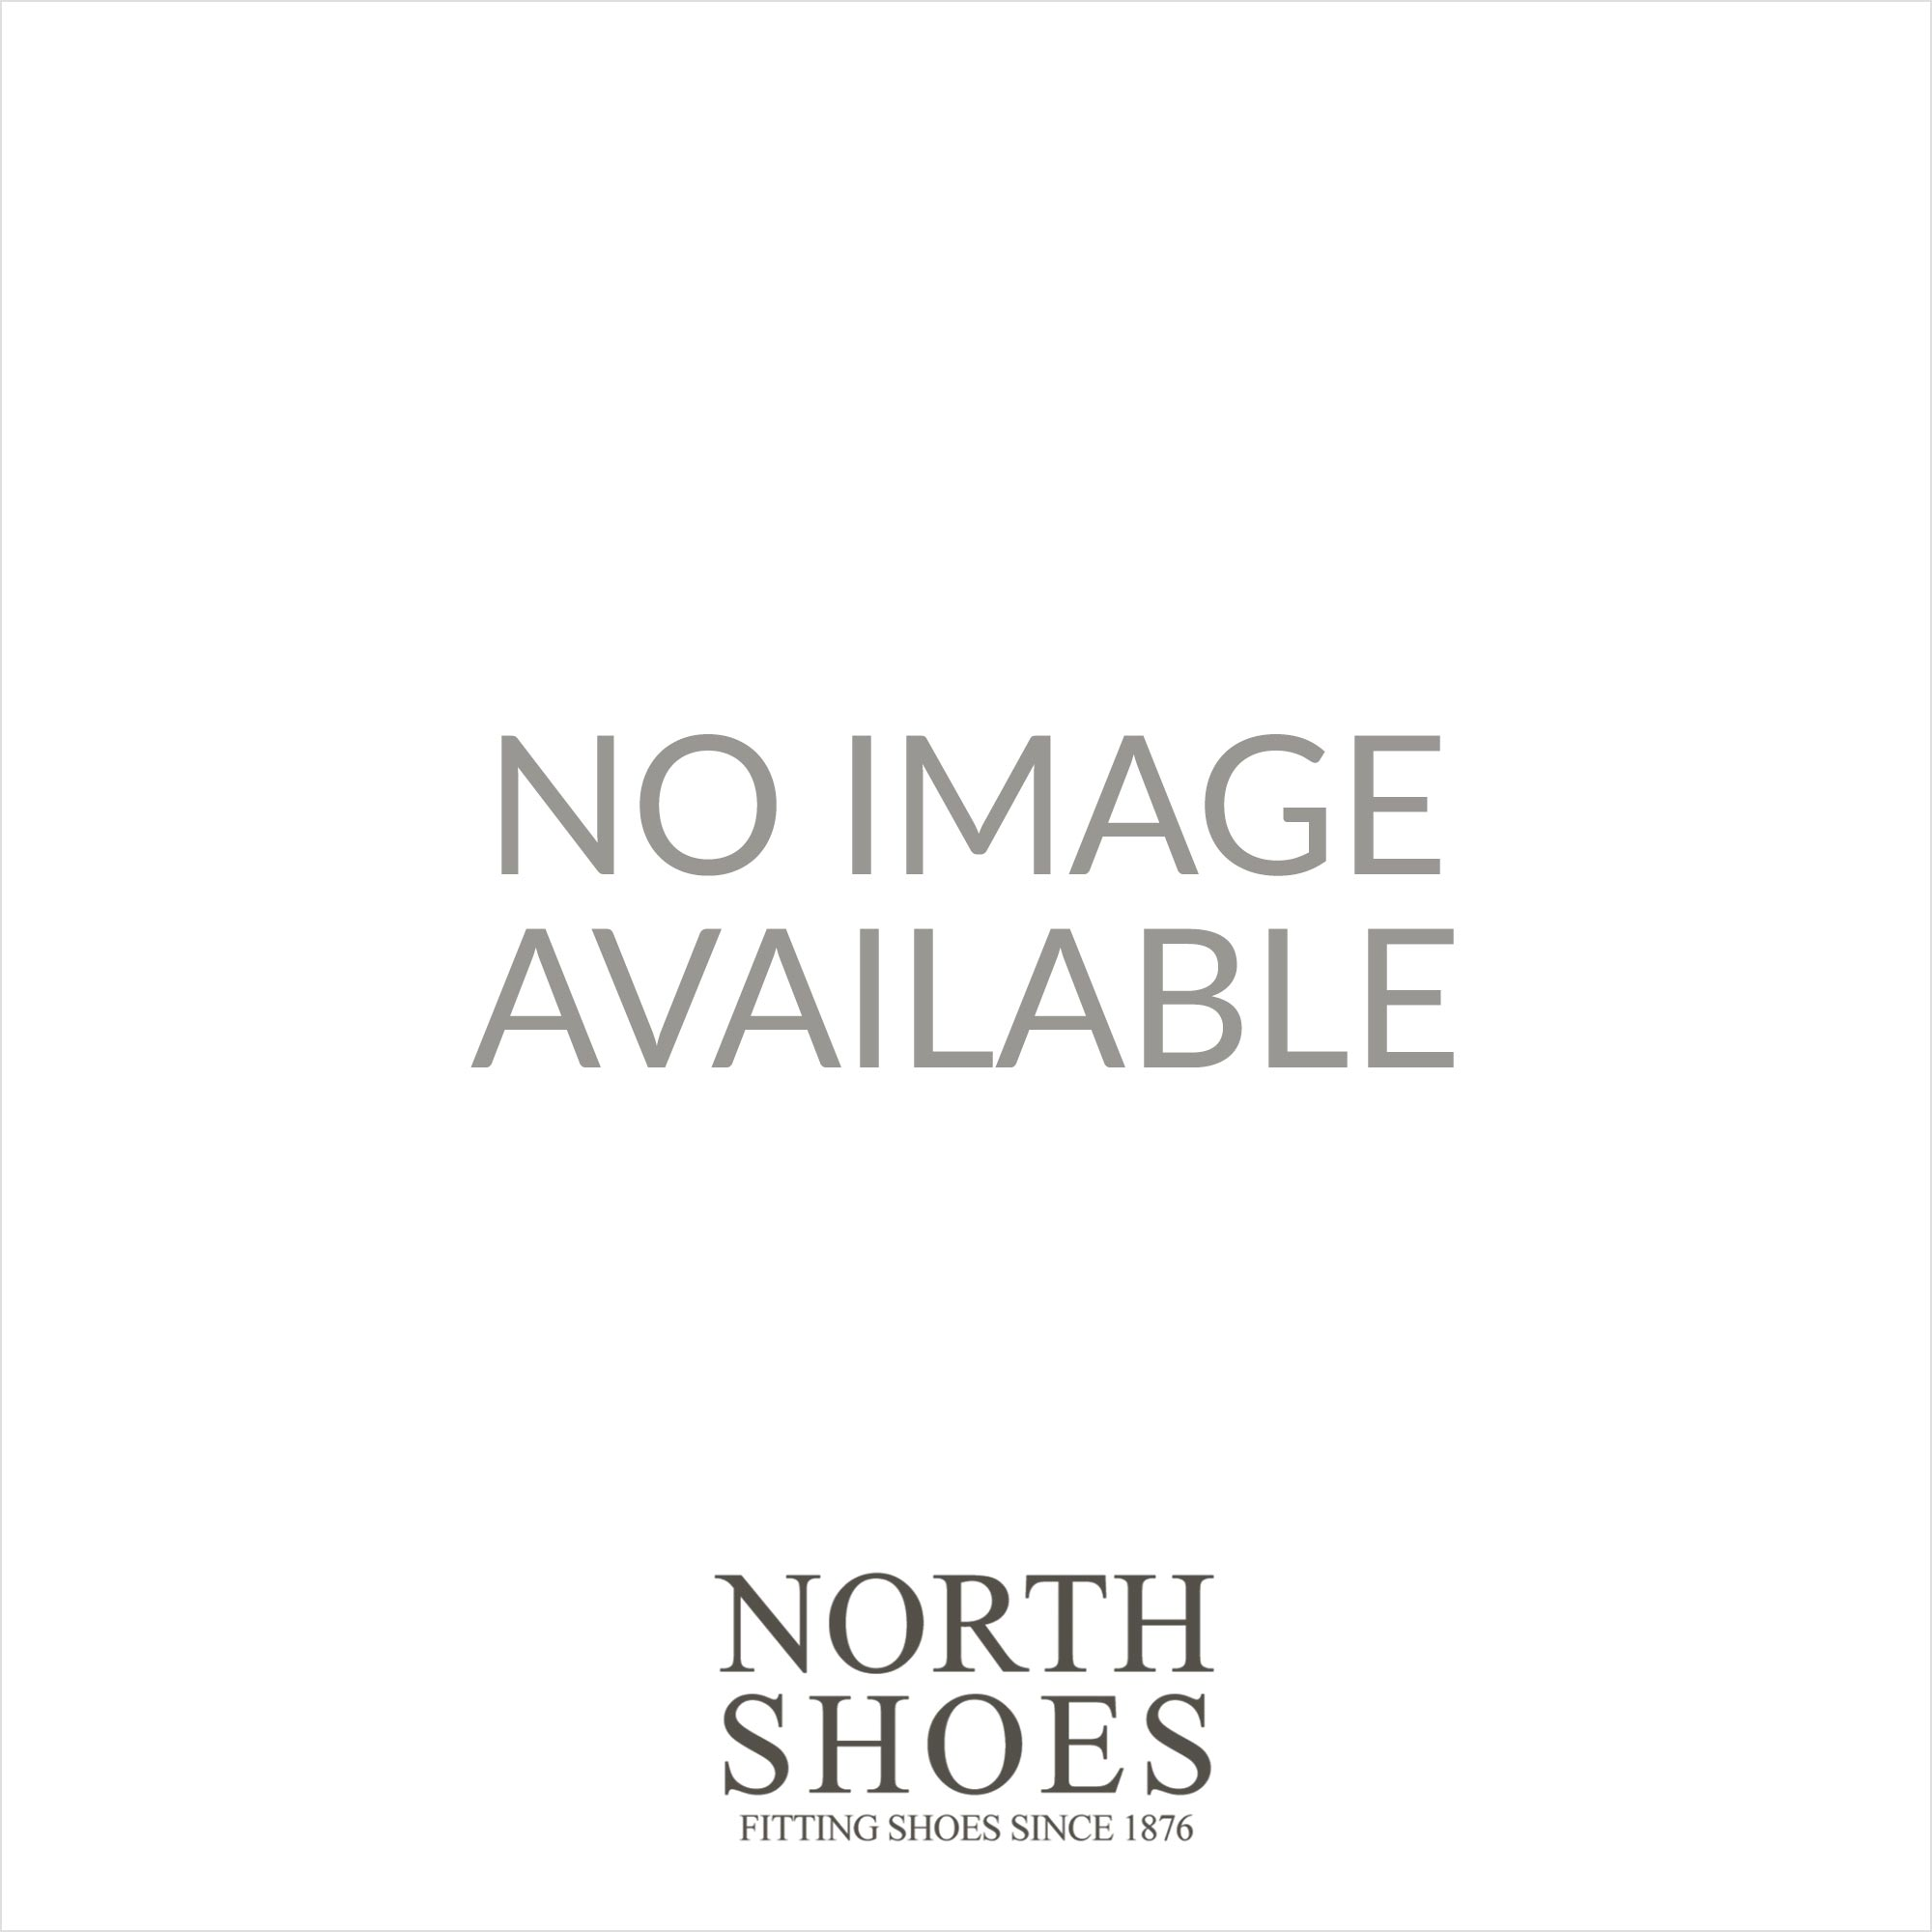 28310-20 Grey Leather/Nubuck Leather Womens Heeled Strapy Sandal